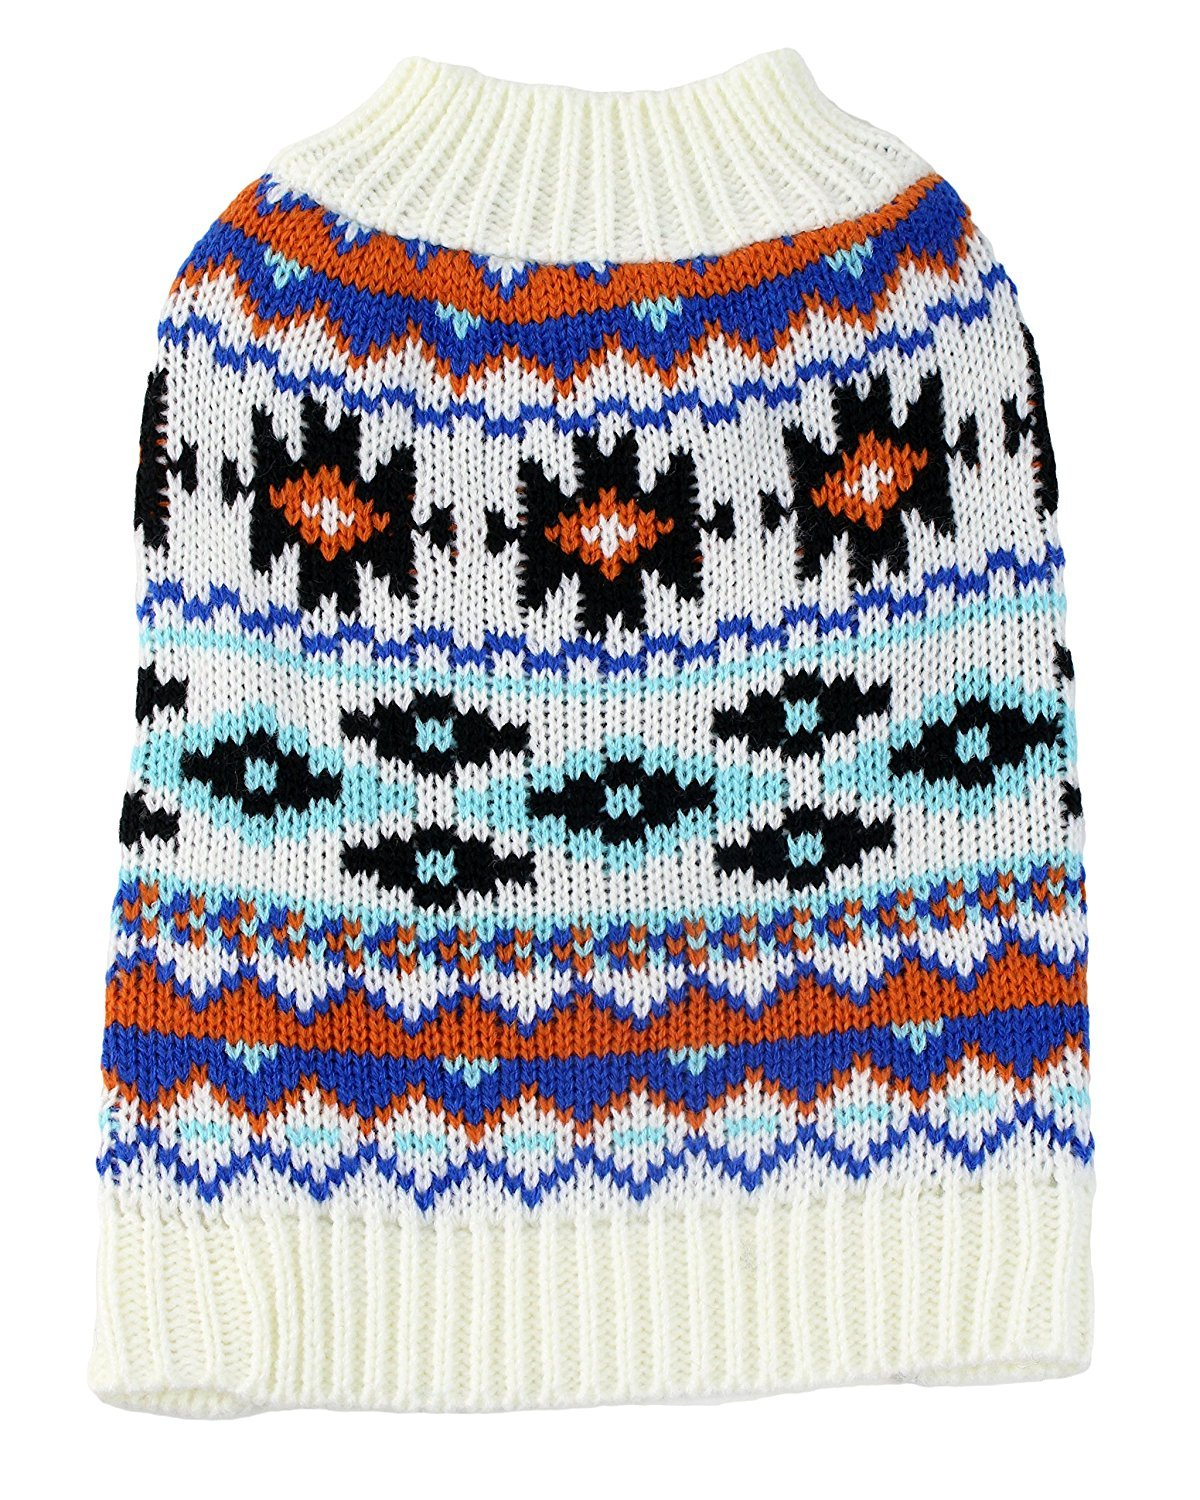 Aztec Dog Sweater by Midlee (Large)